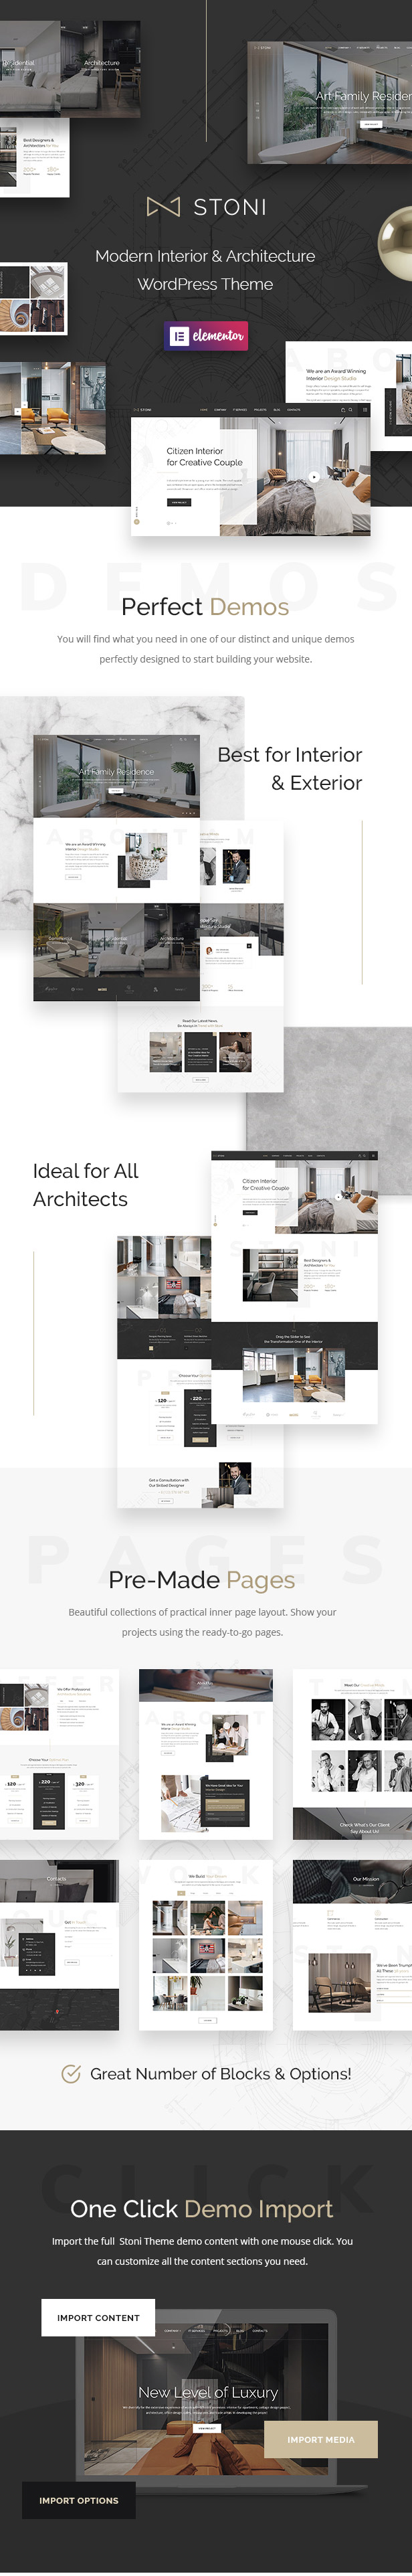 Stoni - Architecture & Interior Design Agency WordPress Theme - 2